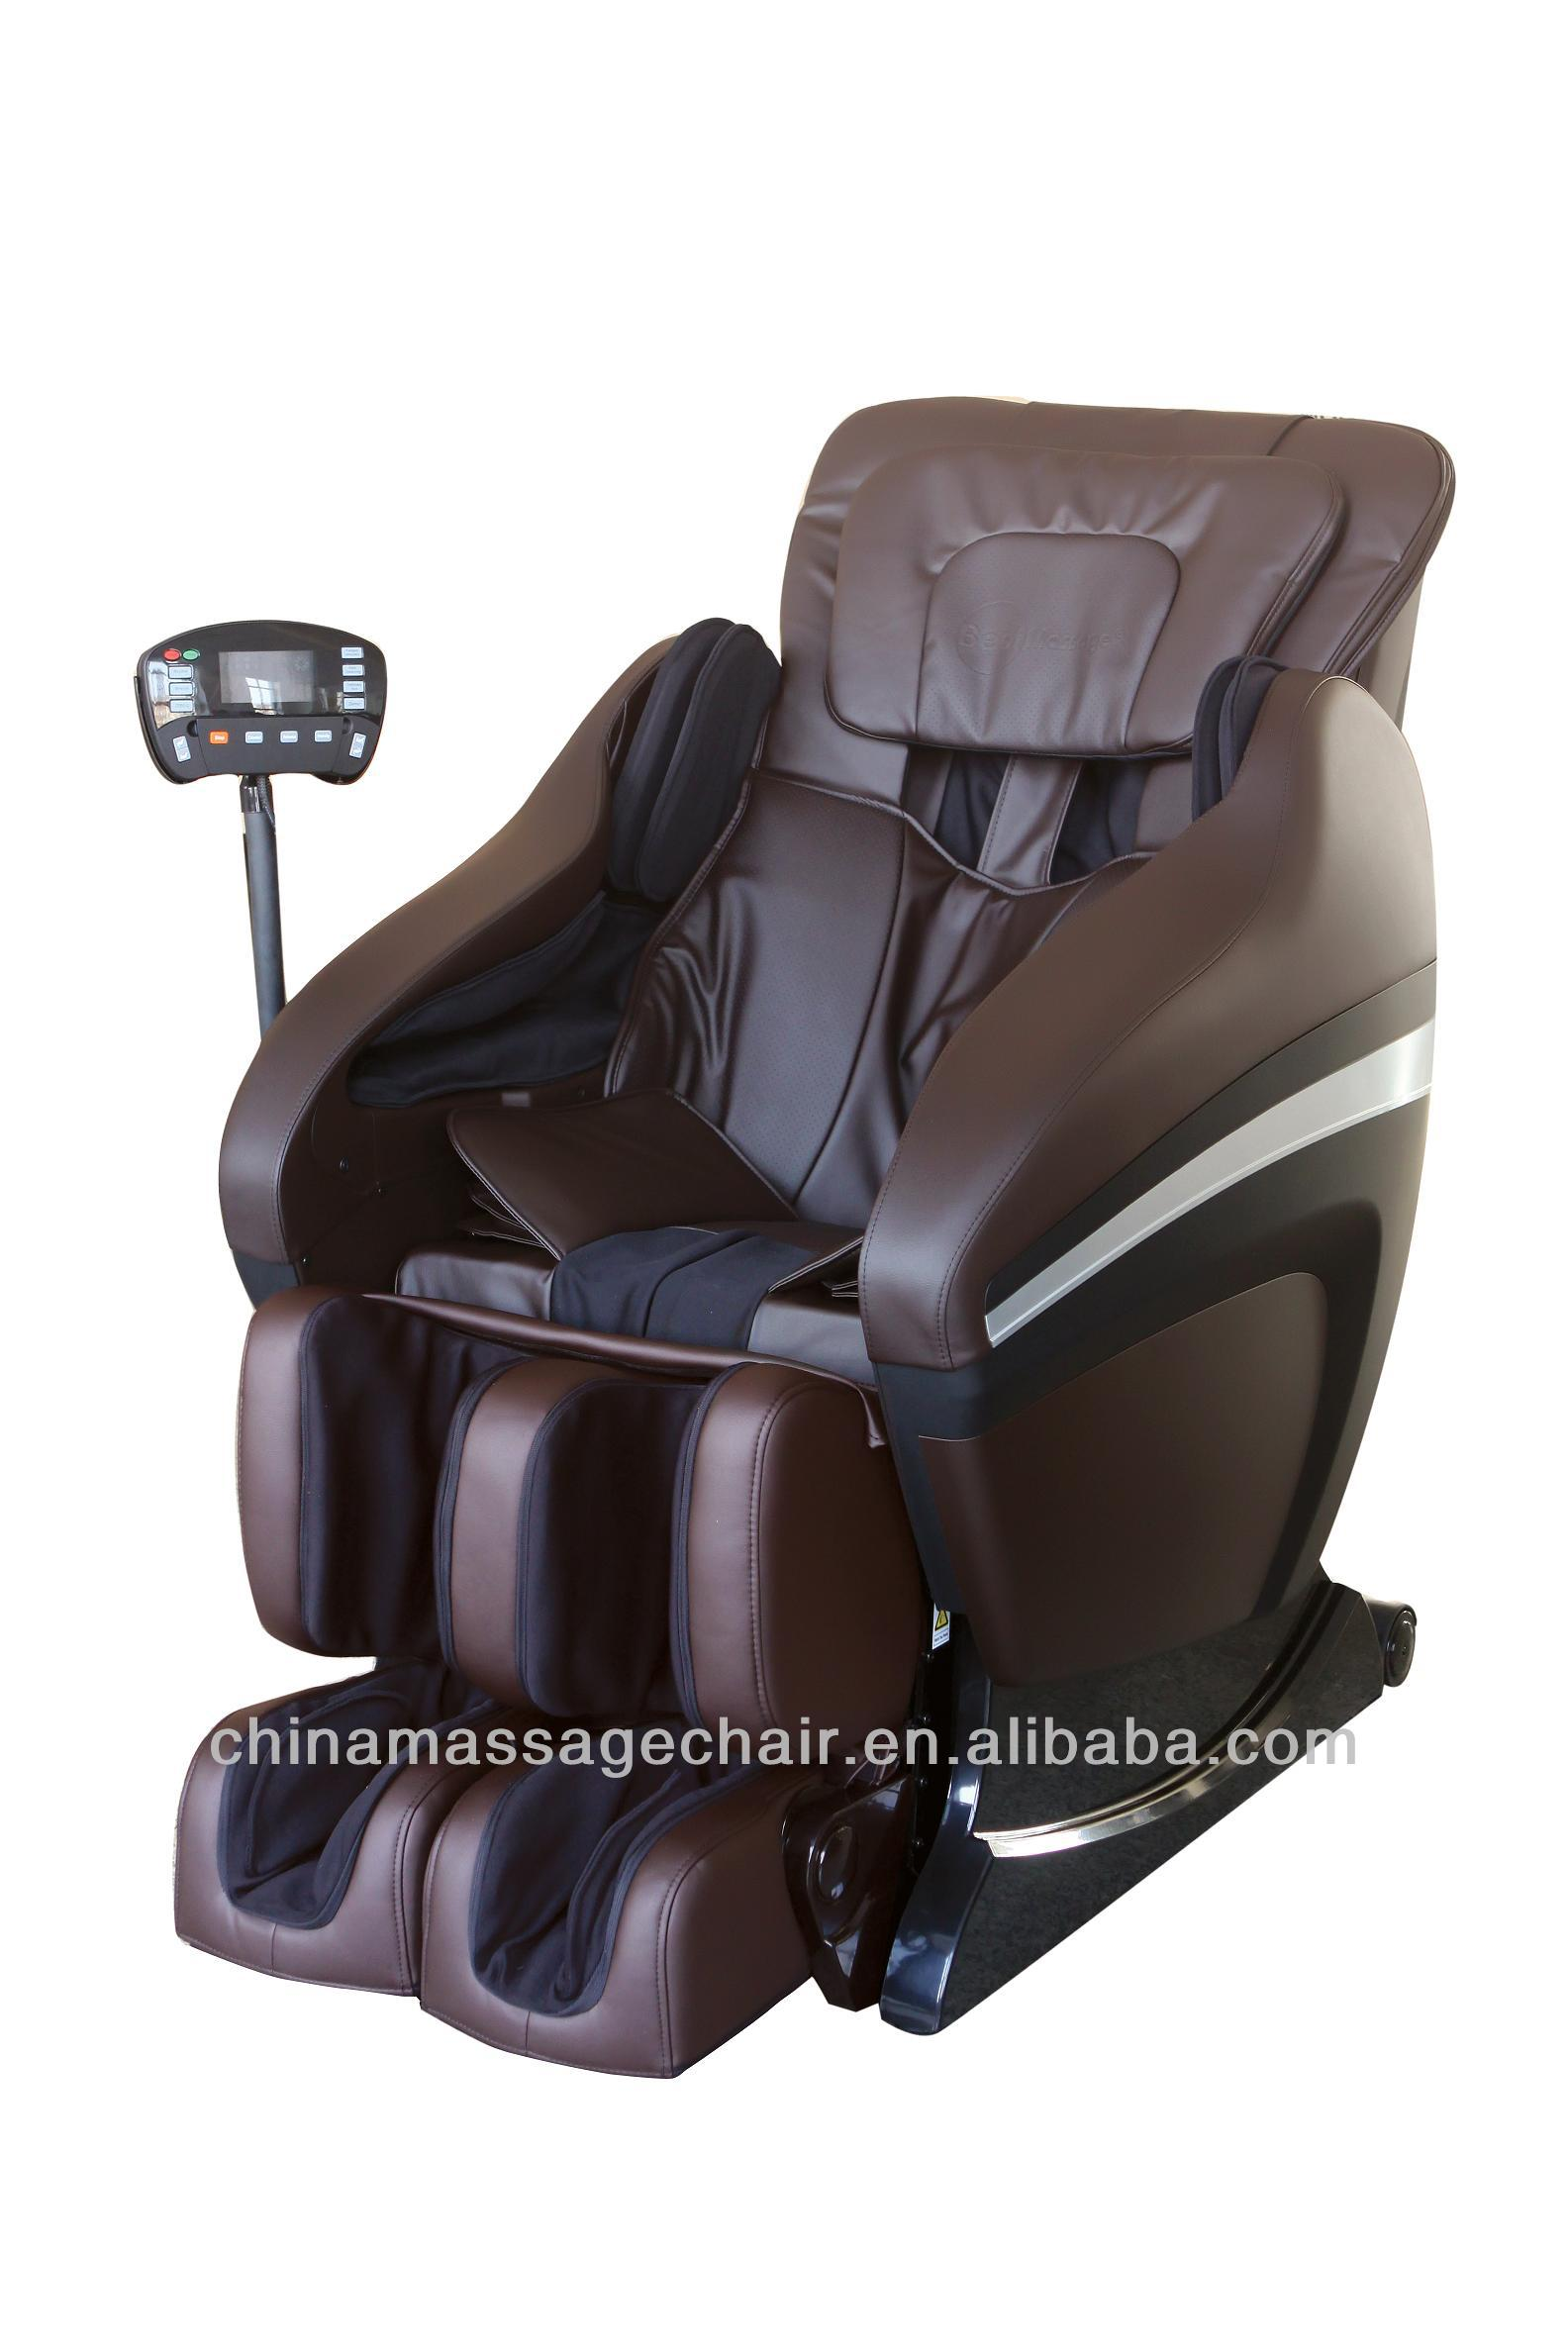 Spaceship Massage Chair Spaceship Massage Chair Suppliers and